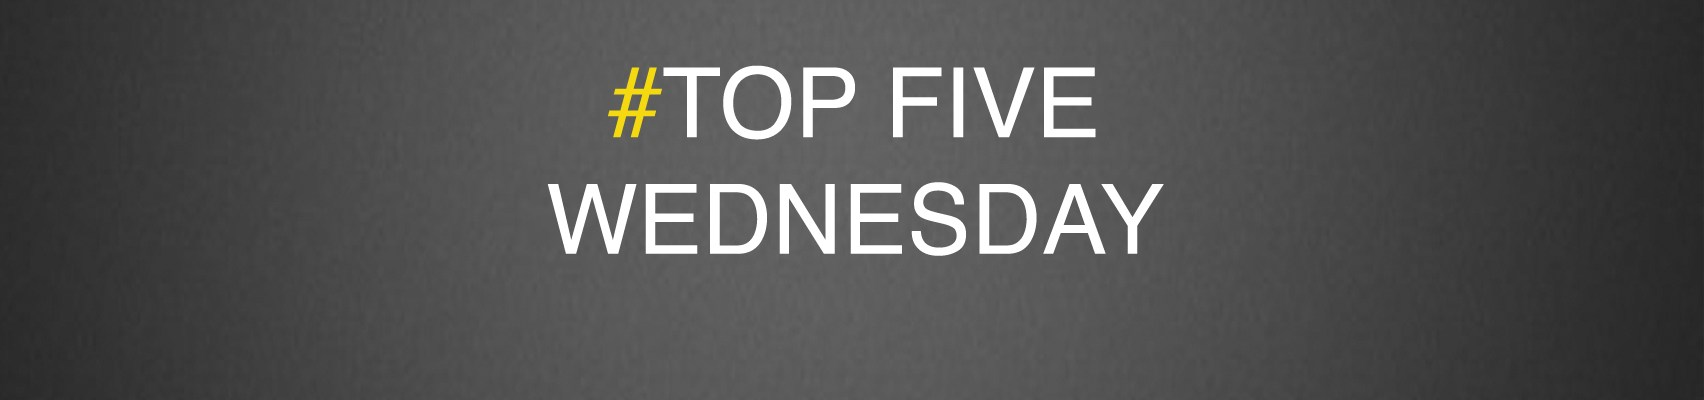 top5wednesday